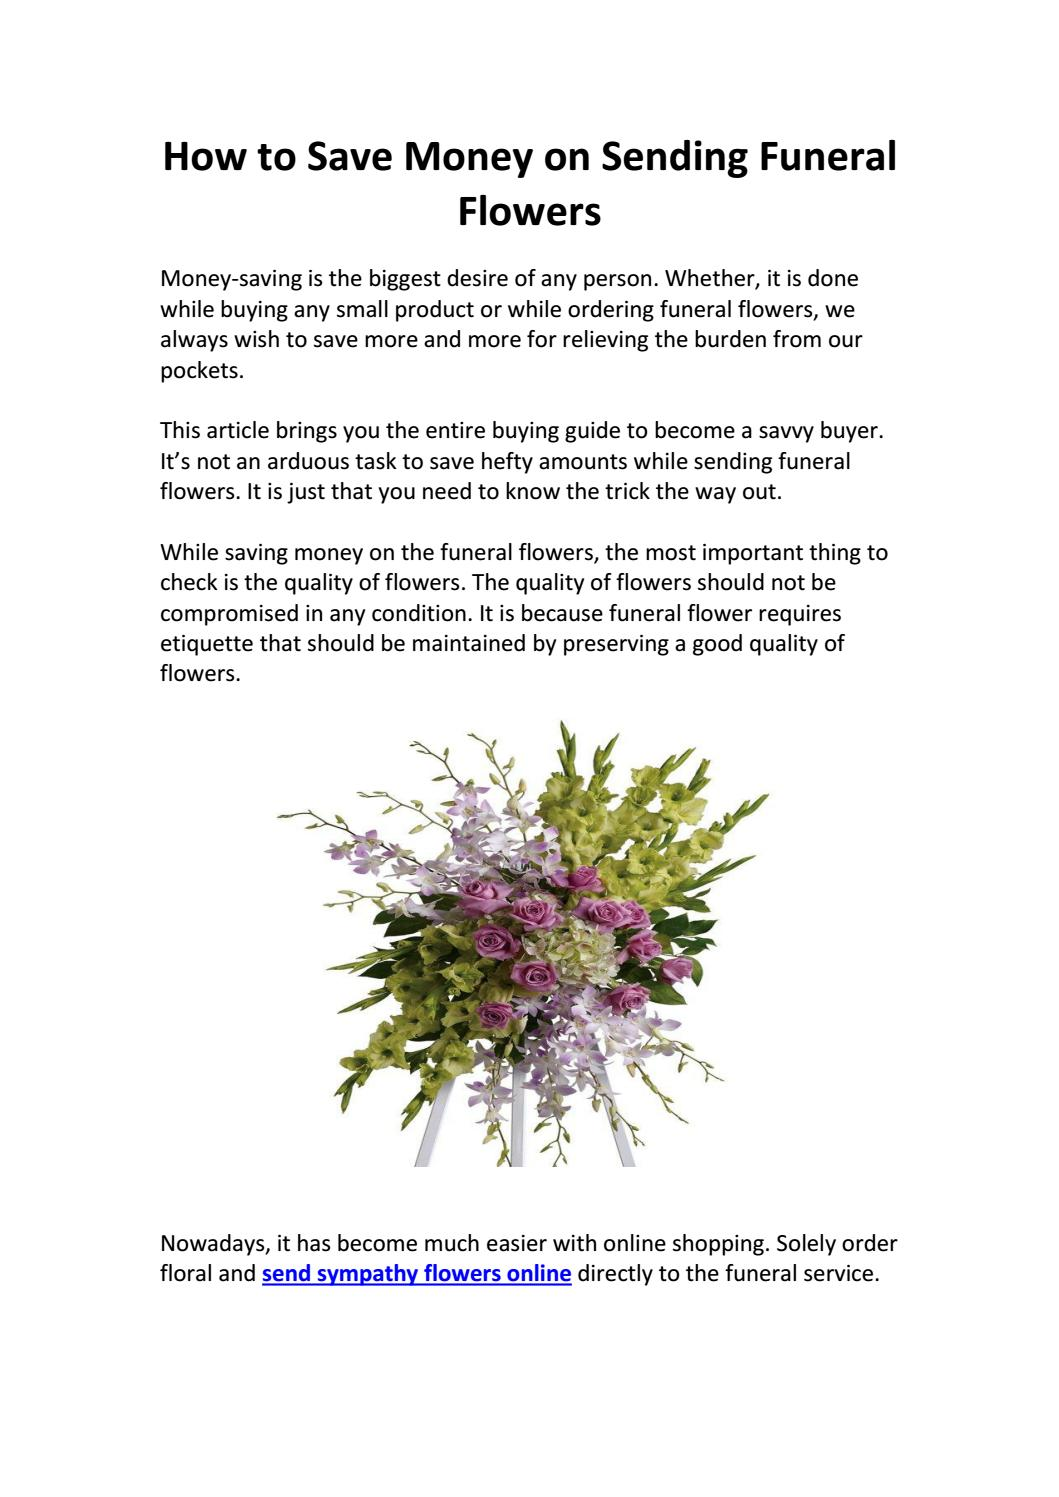 How to save money on sending funeral flowers by flowersandsympathy how to save money on sending funeral flowers by flowersandsympathy issuu izmirmasajfo